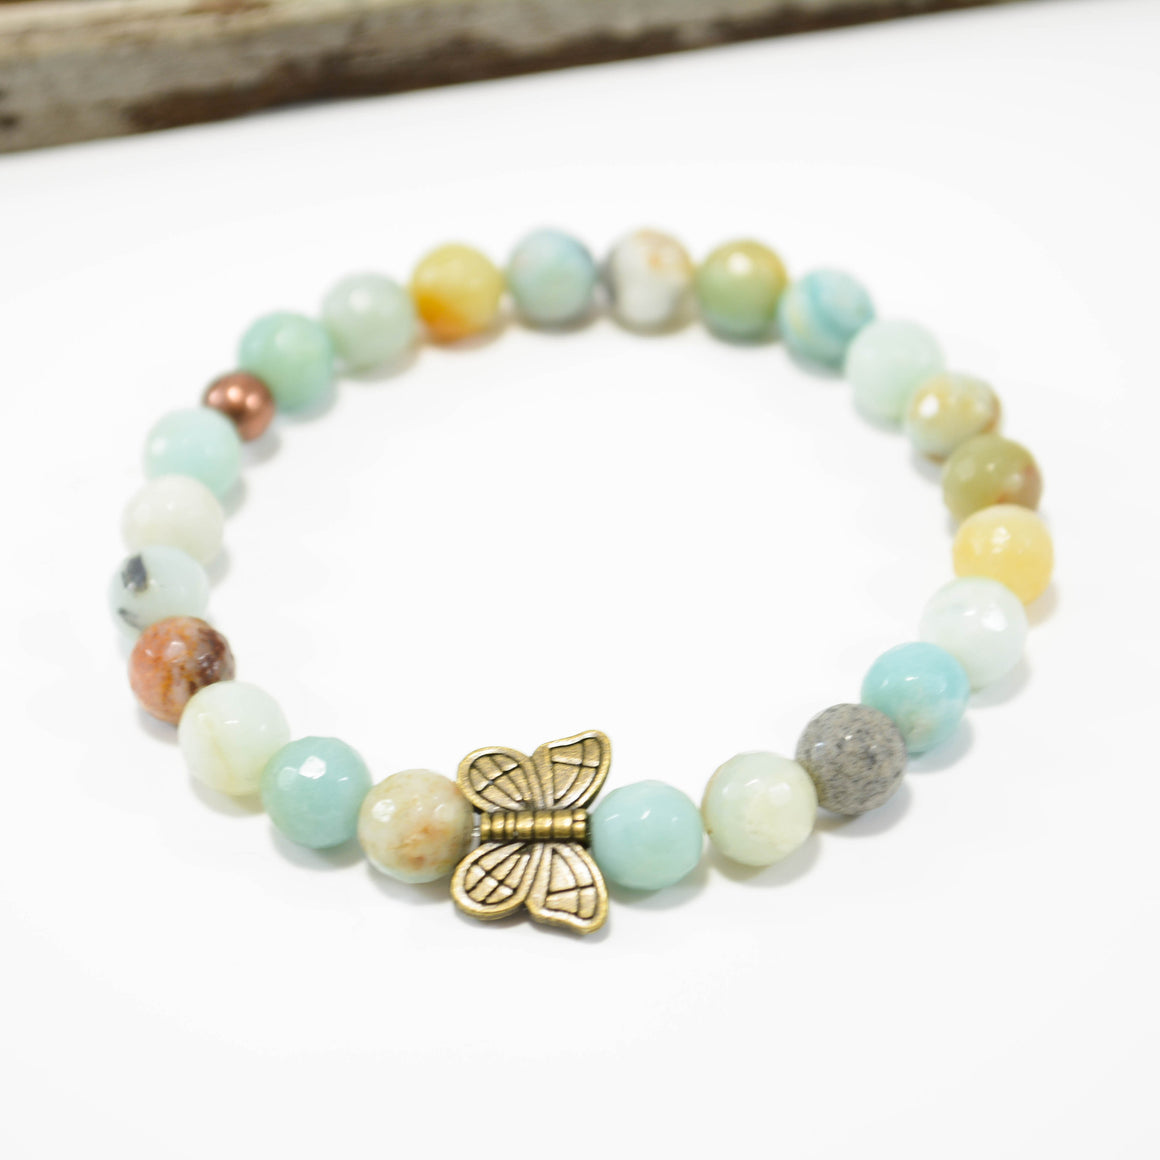 Calming and Soothing Energy Bracelet - Bronze Butterfly